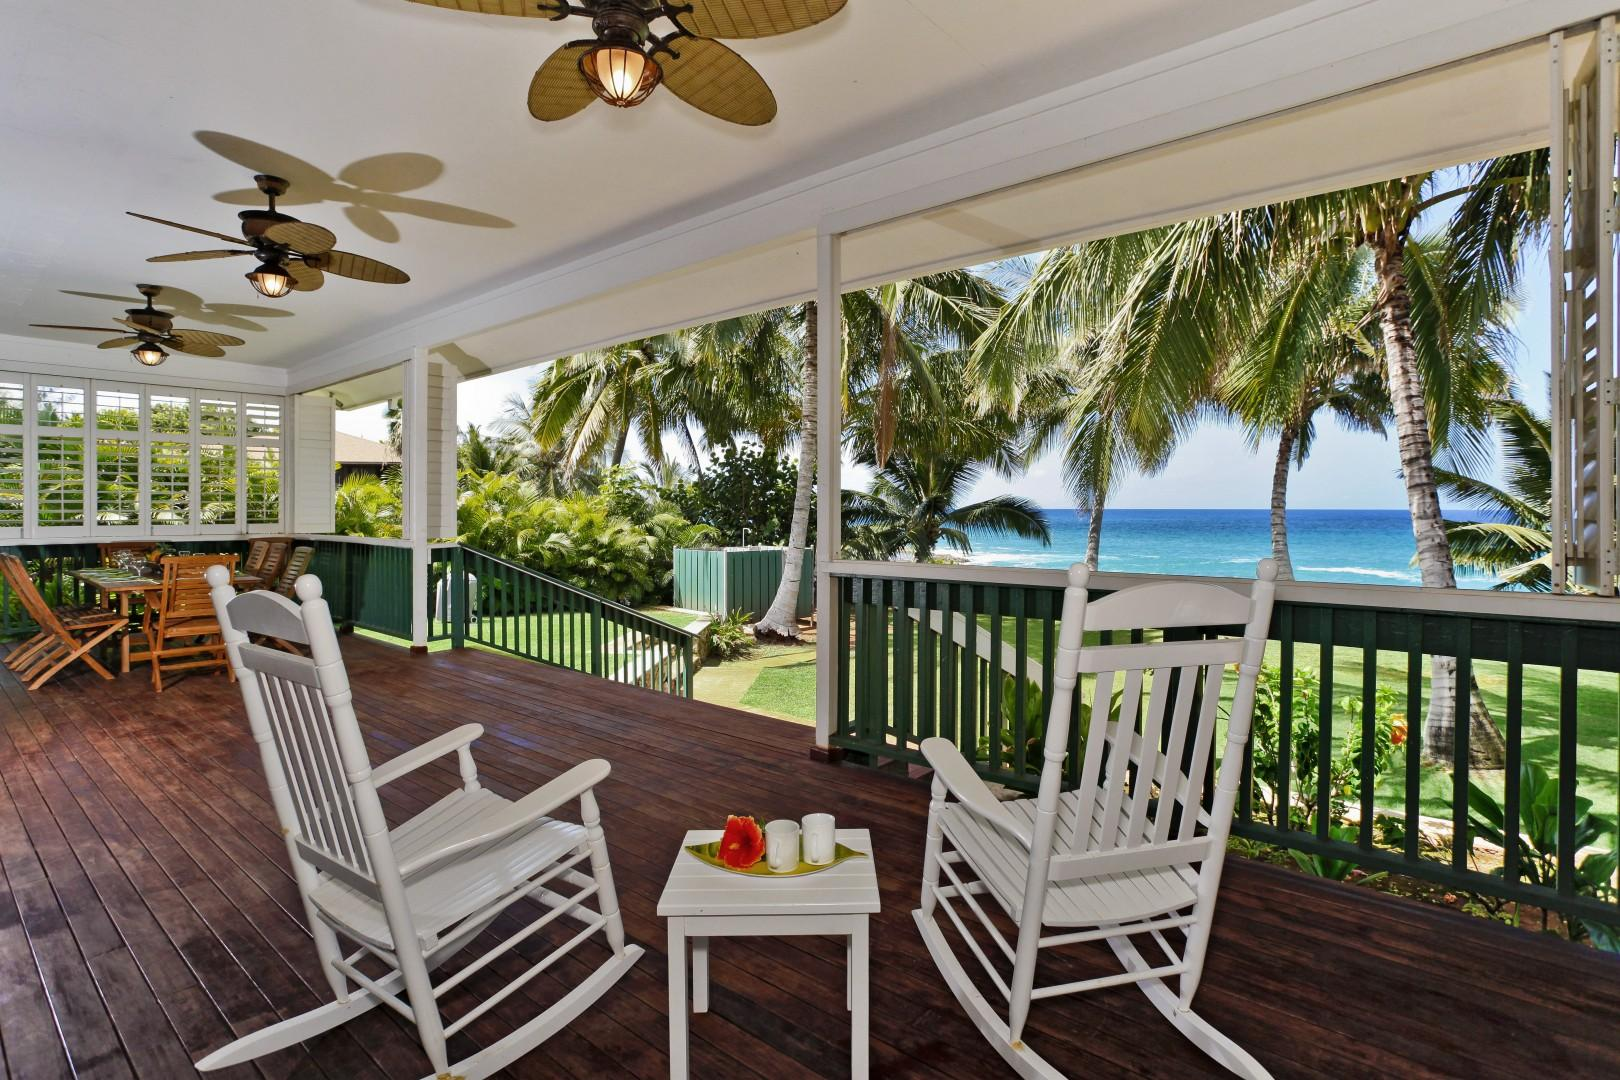 Enjoy your oceanfront view from the covered lanai of the Makaha Hale.